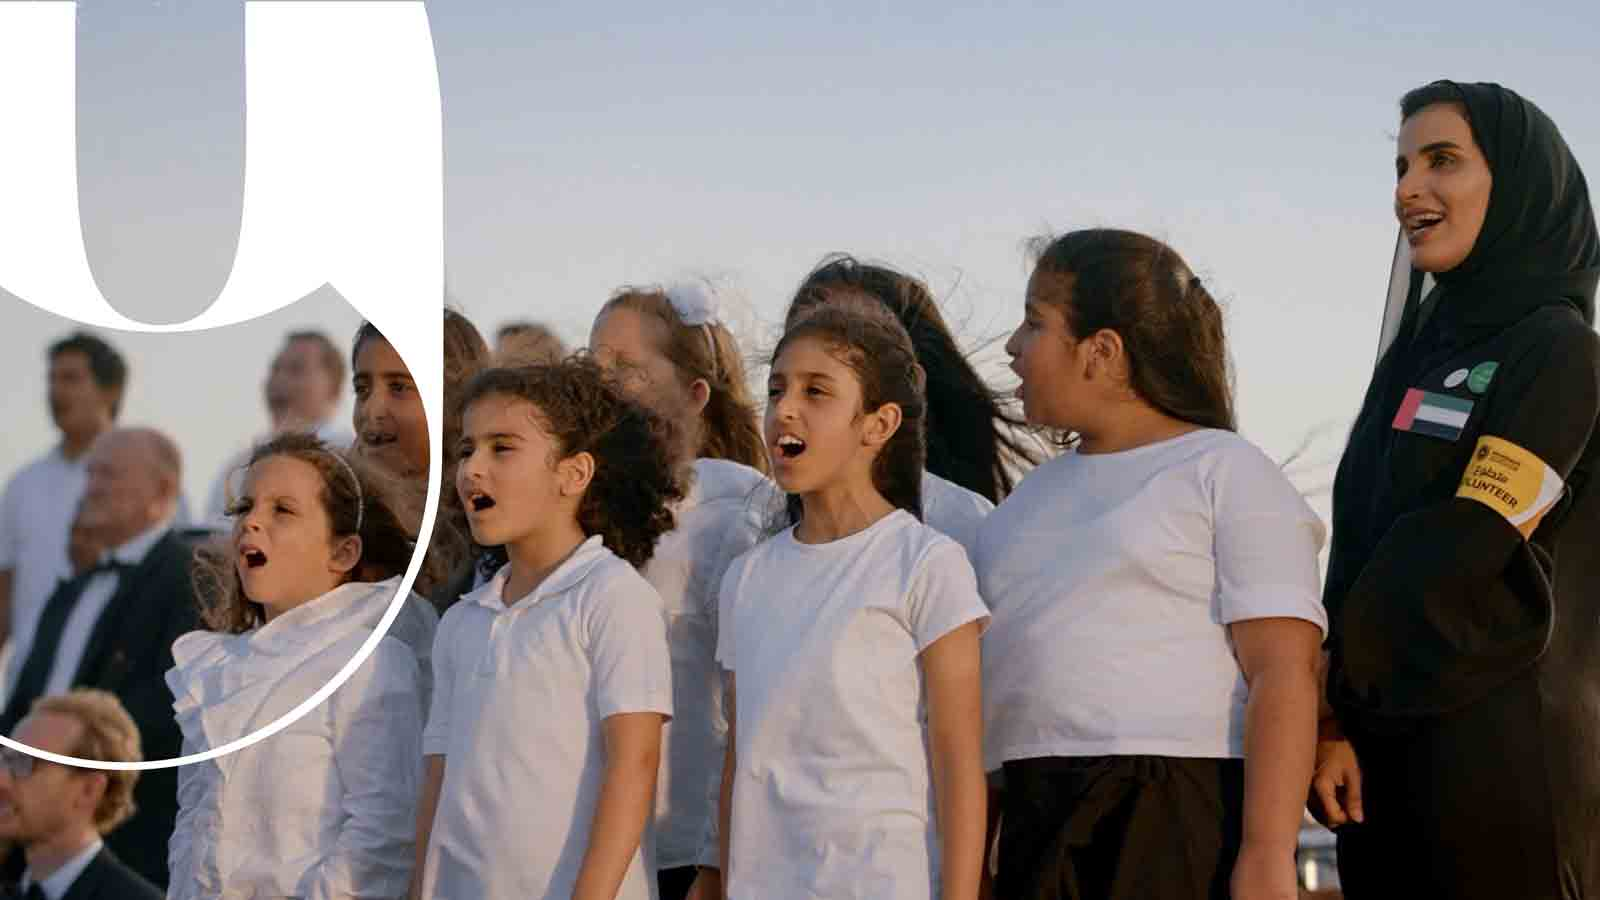 A group of children happily singing as part of a concert in the desert